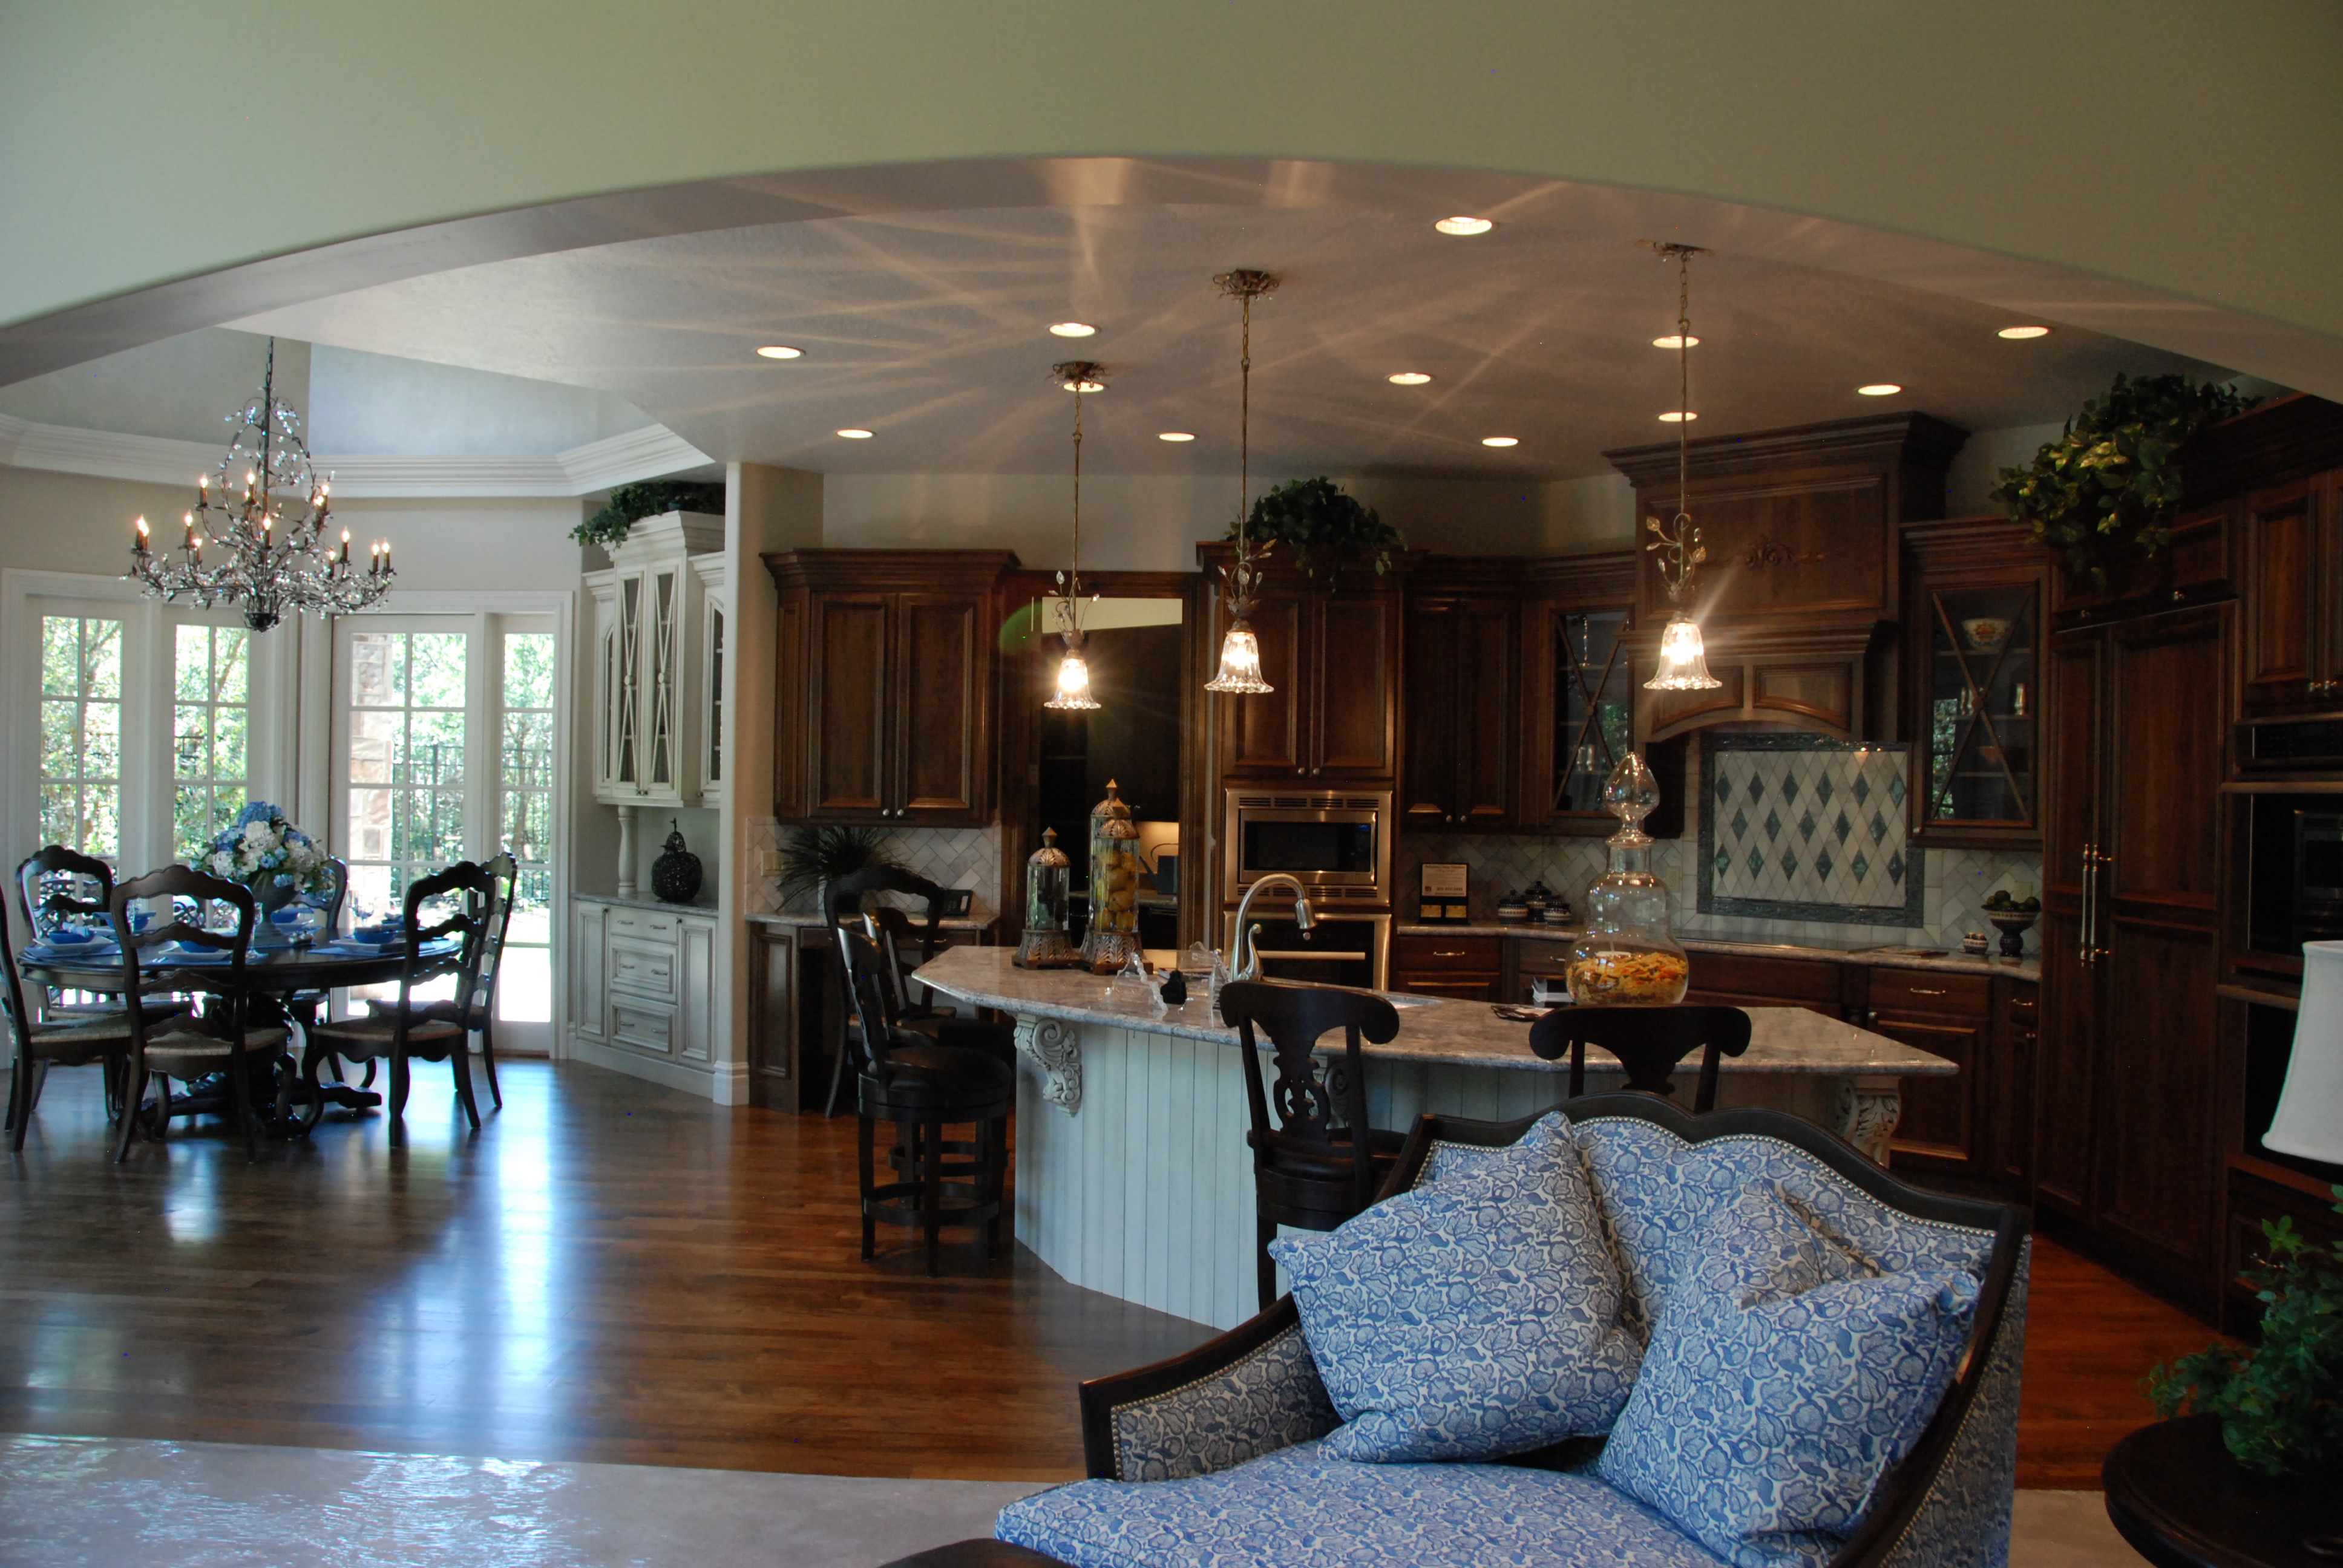 Salt Lake Parade of Homes 2011 Steven Dailey Wins Best in